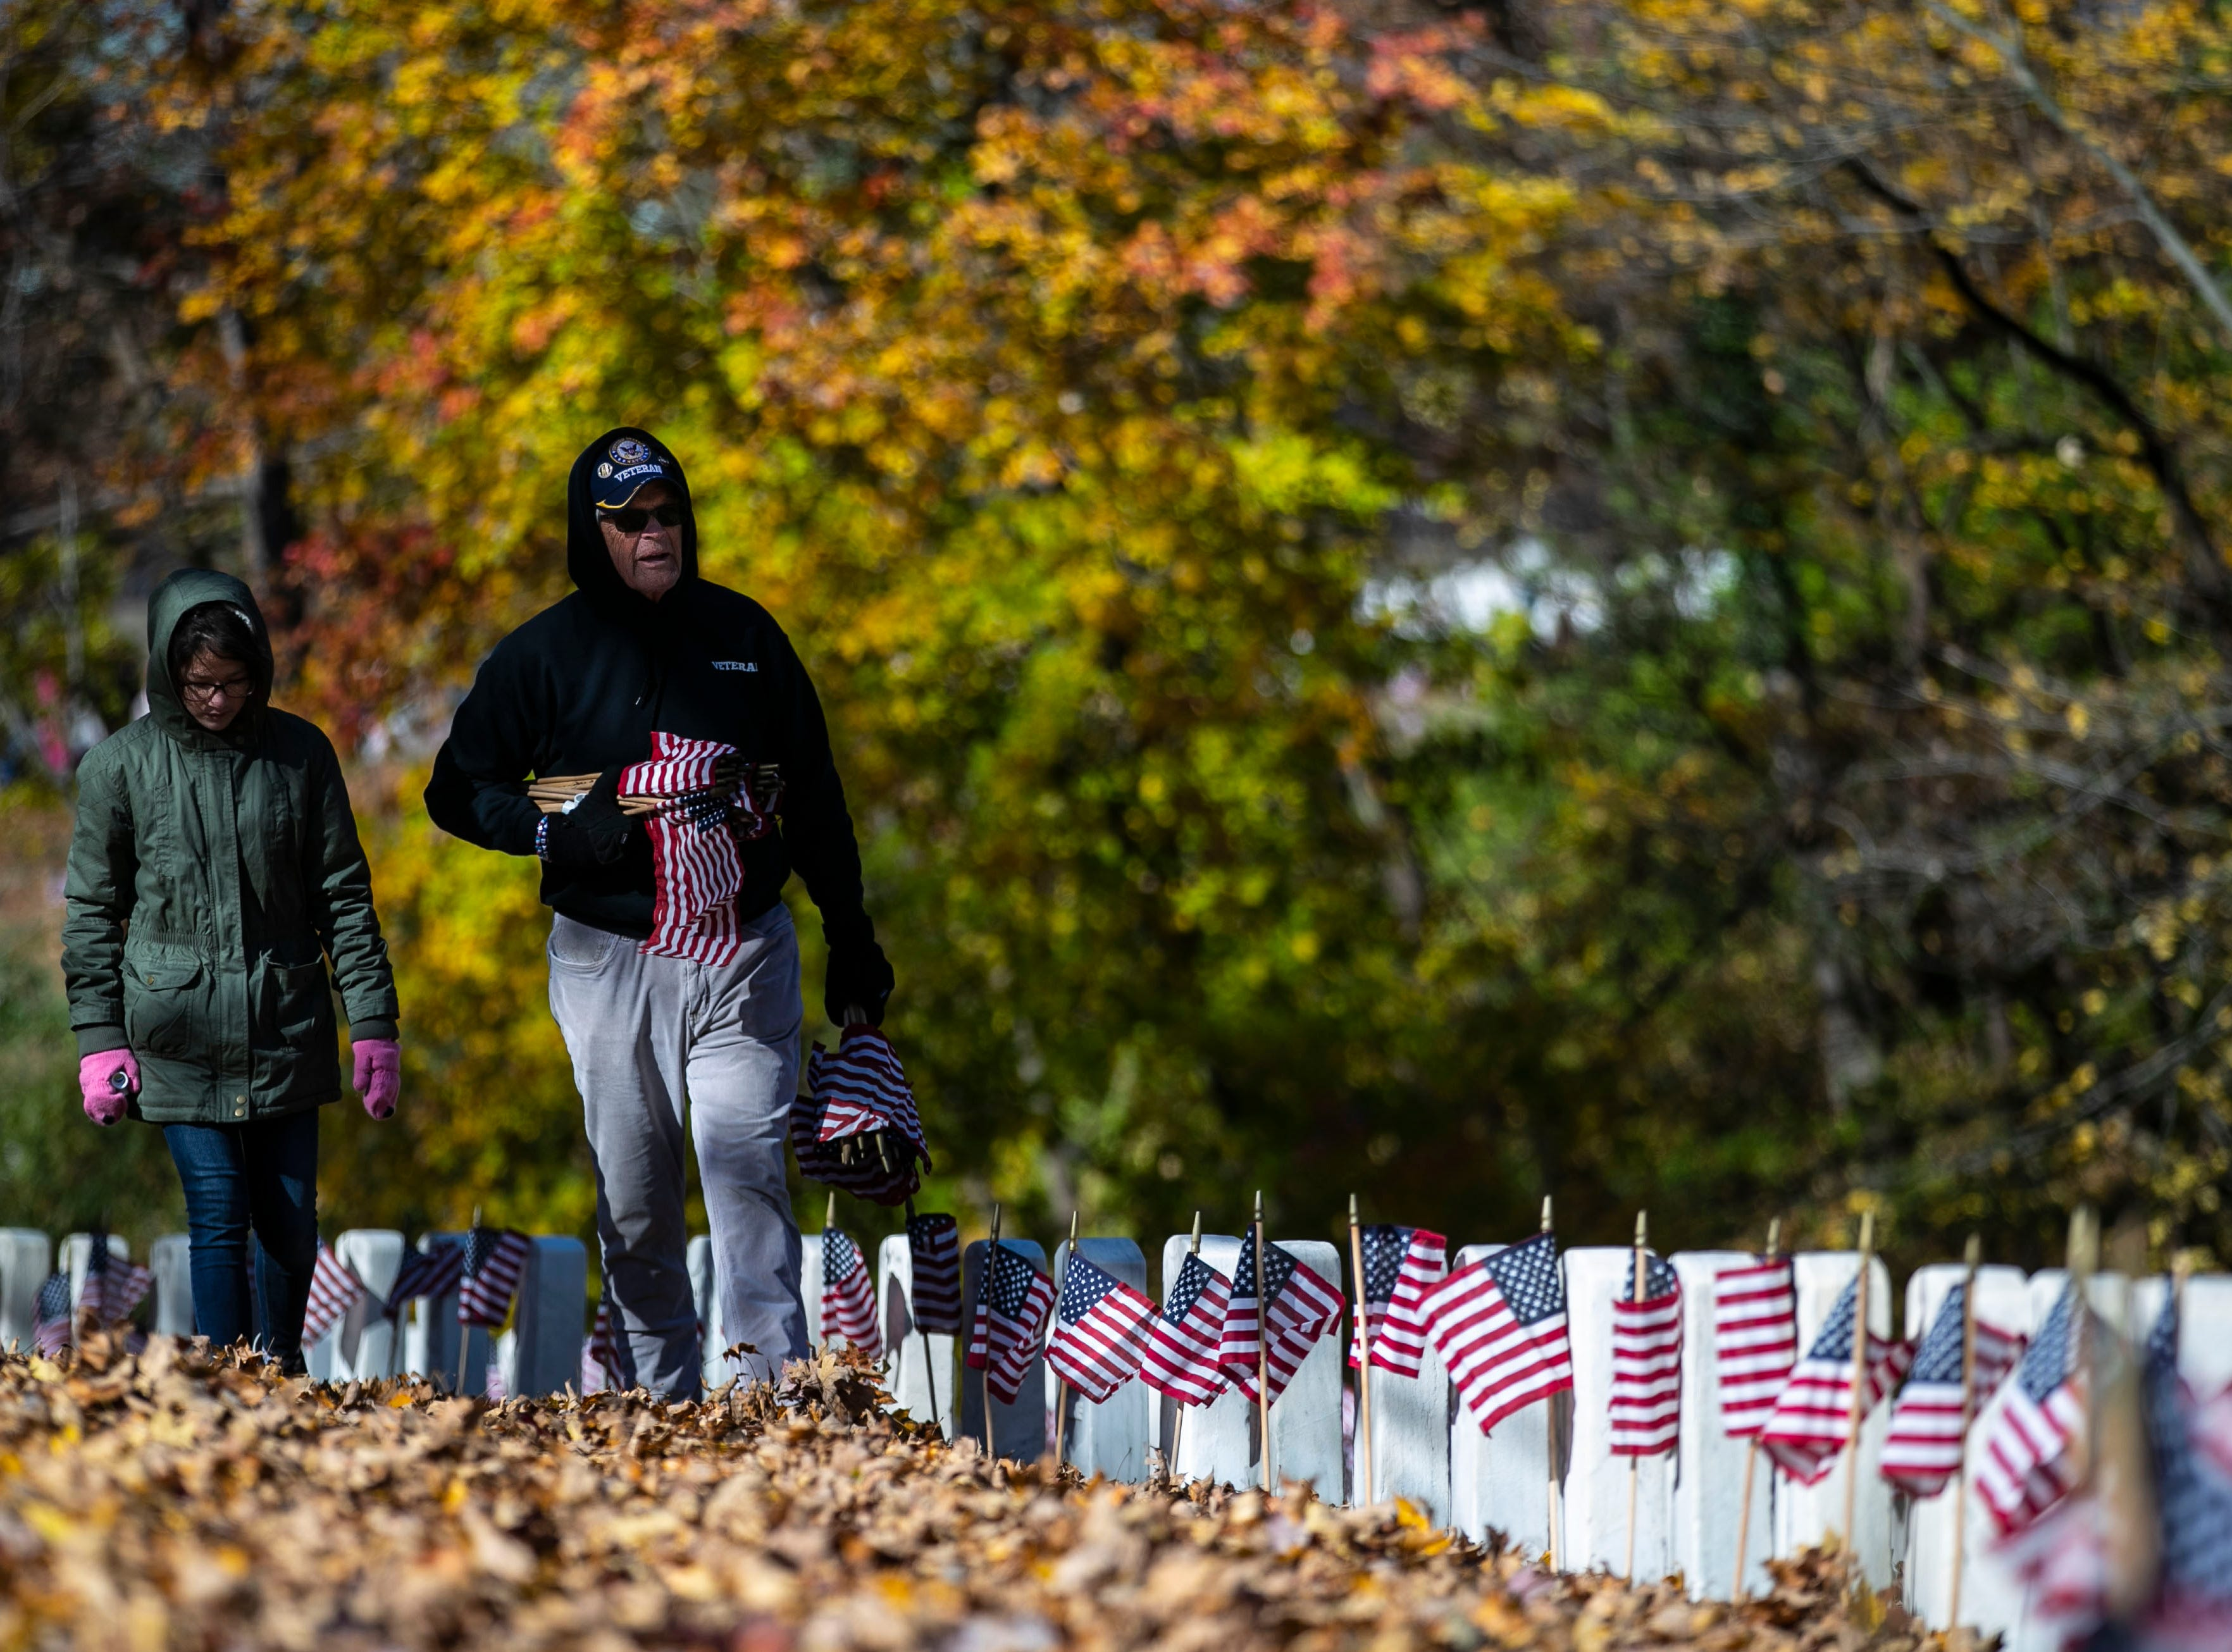 Mia Tichy walks through the fallen leaves while grandfather and Vietnam War veteran Bob Tichy carries flags to place during a Flags 4 Vets event at Cave Hill Cemetery Saturday, Nov. 10, 2018. Veterans Day is Sunday, Nov. 11. Around 250 volunteers placed nearly 7,500 flags on military veteran gravesites.